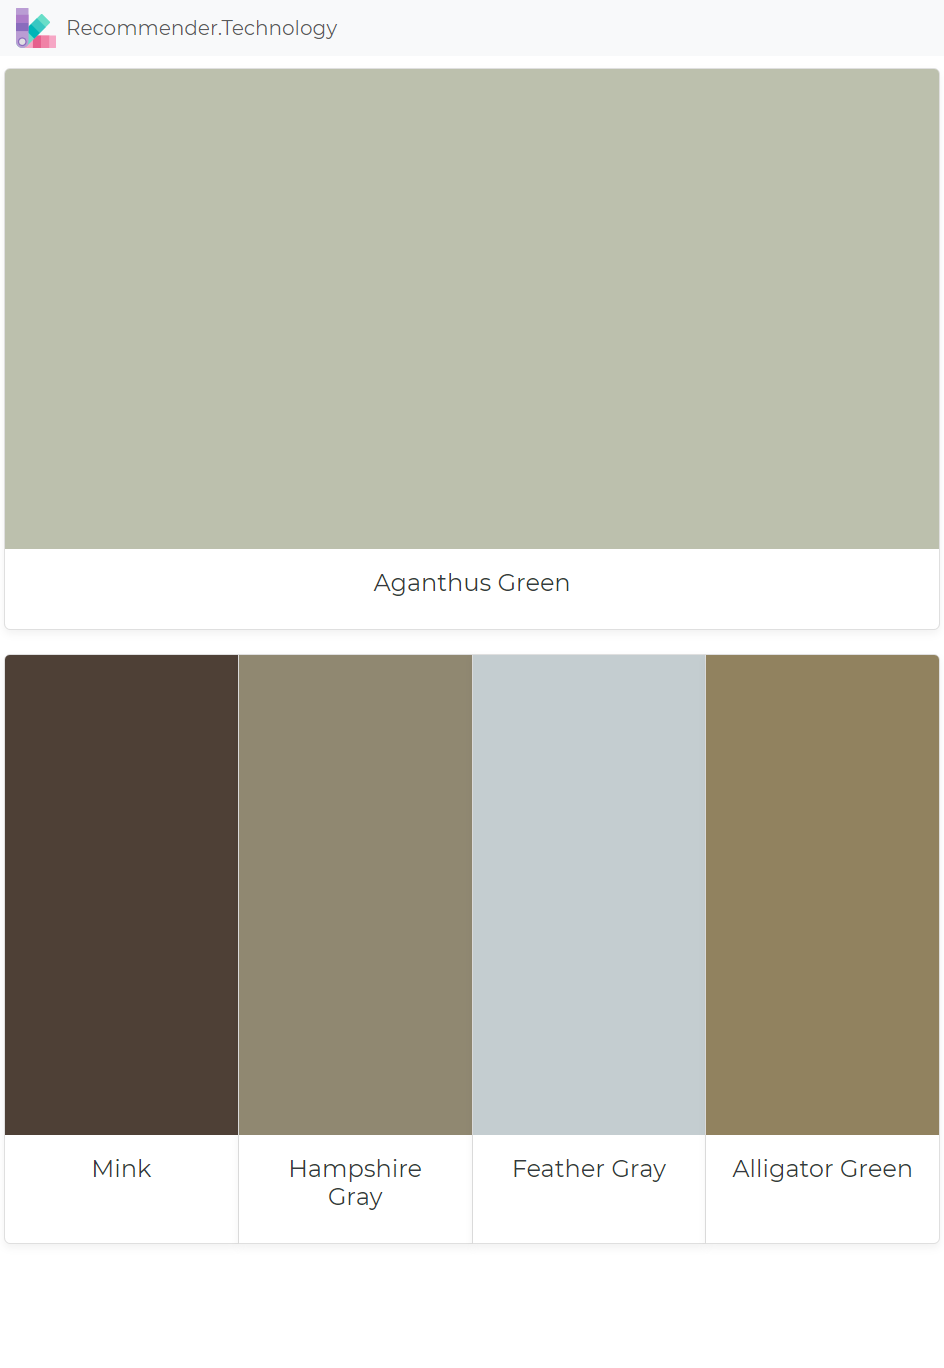 Benjamin Moore Aganthus Green: Aganthus Green: Mink, Hampshire Gray, Feather Gray